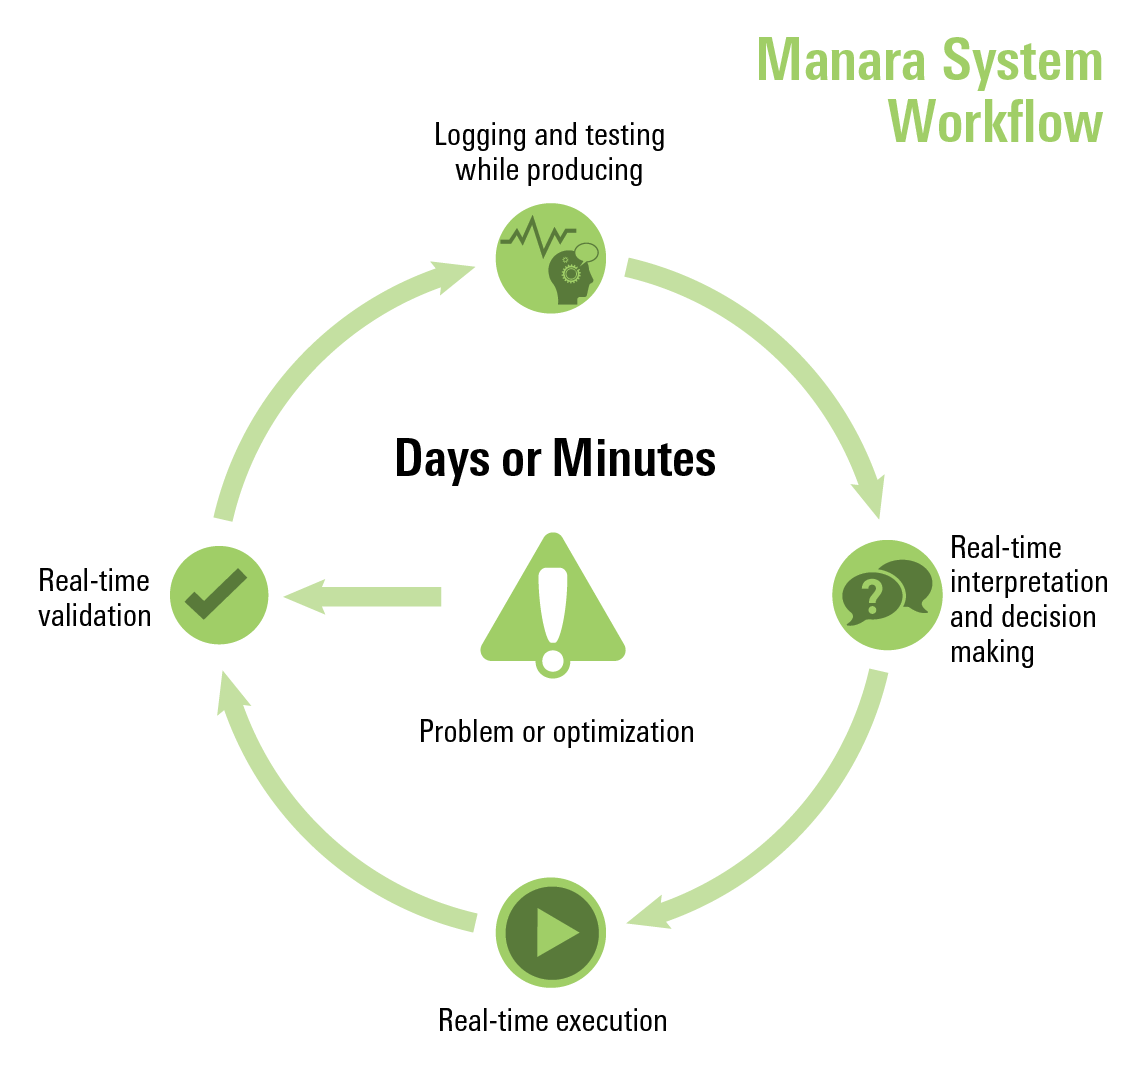 Manara system workflow with a more simplistic infographic